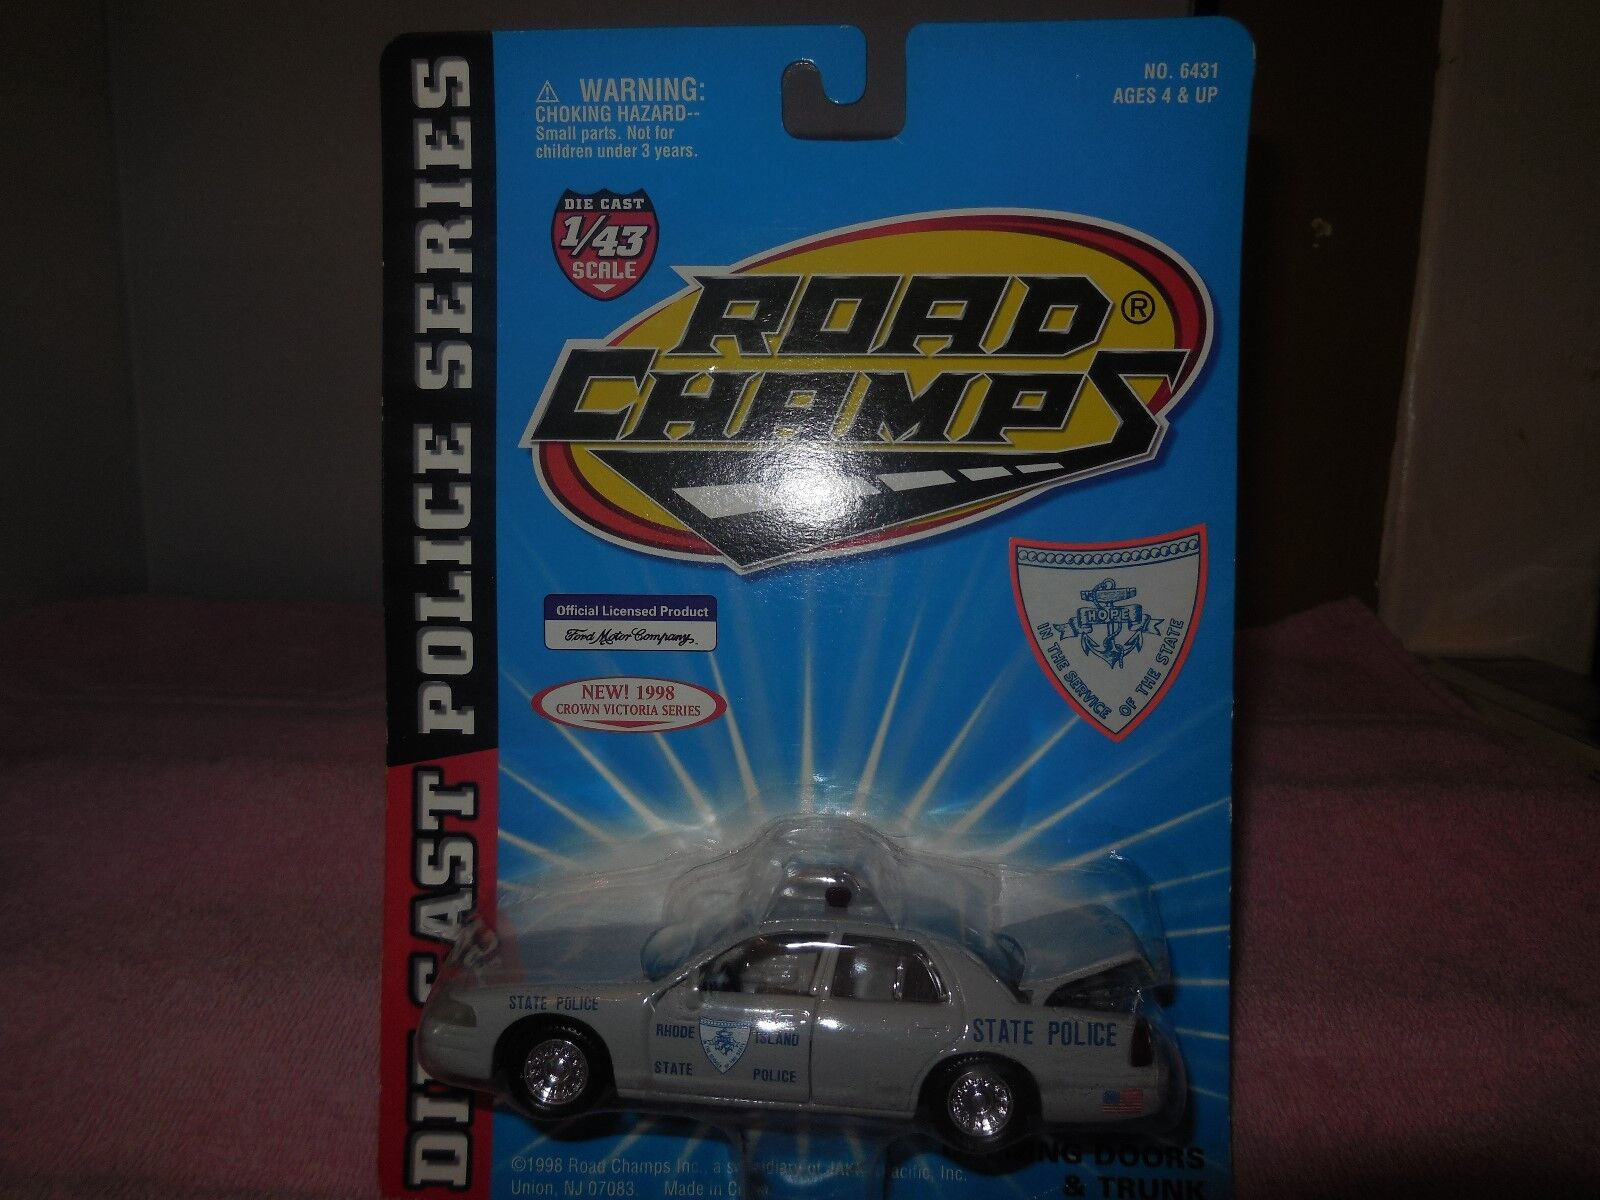 1998 road champs rhode island state police diecast police police police car bd5d42